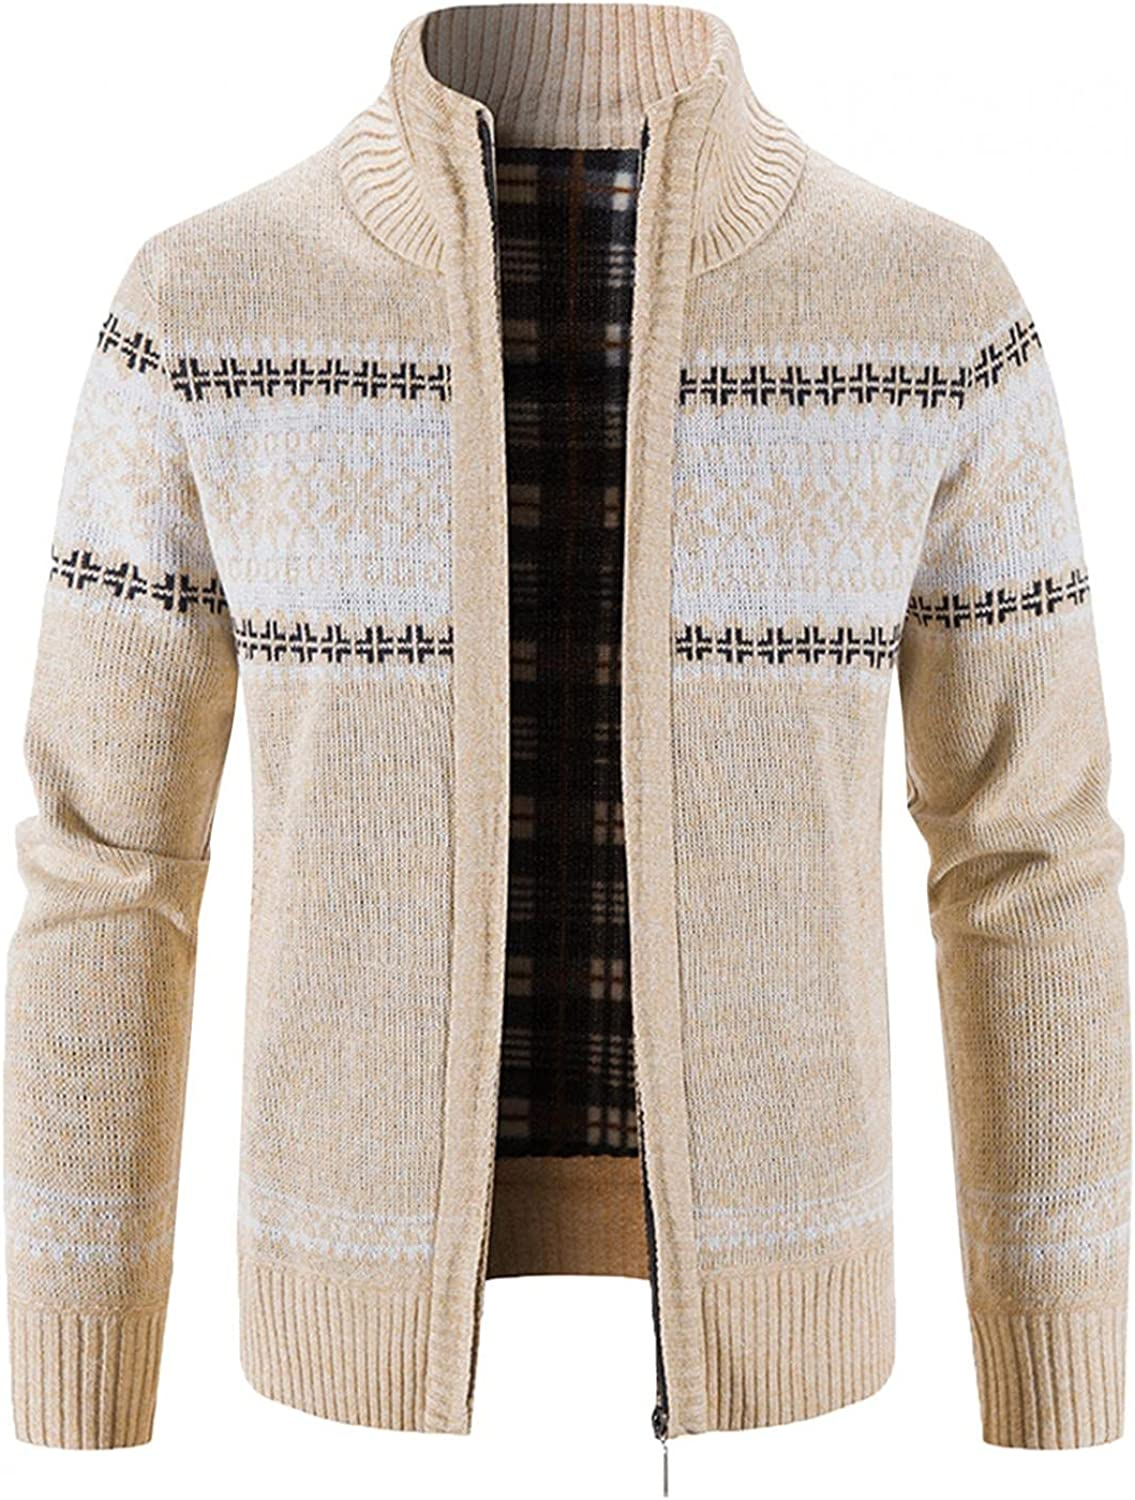 Men's Knit Jacket Coat Block Printed Stand Collar Warm Cardigan Long Sleeve Trench Coat Blouse